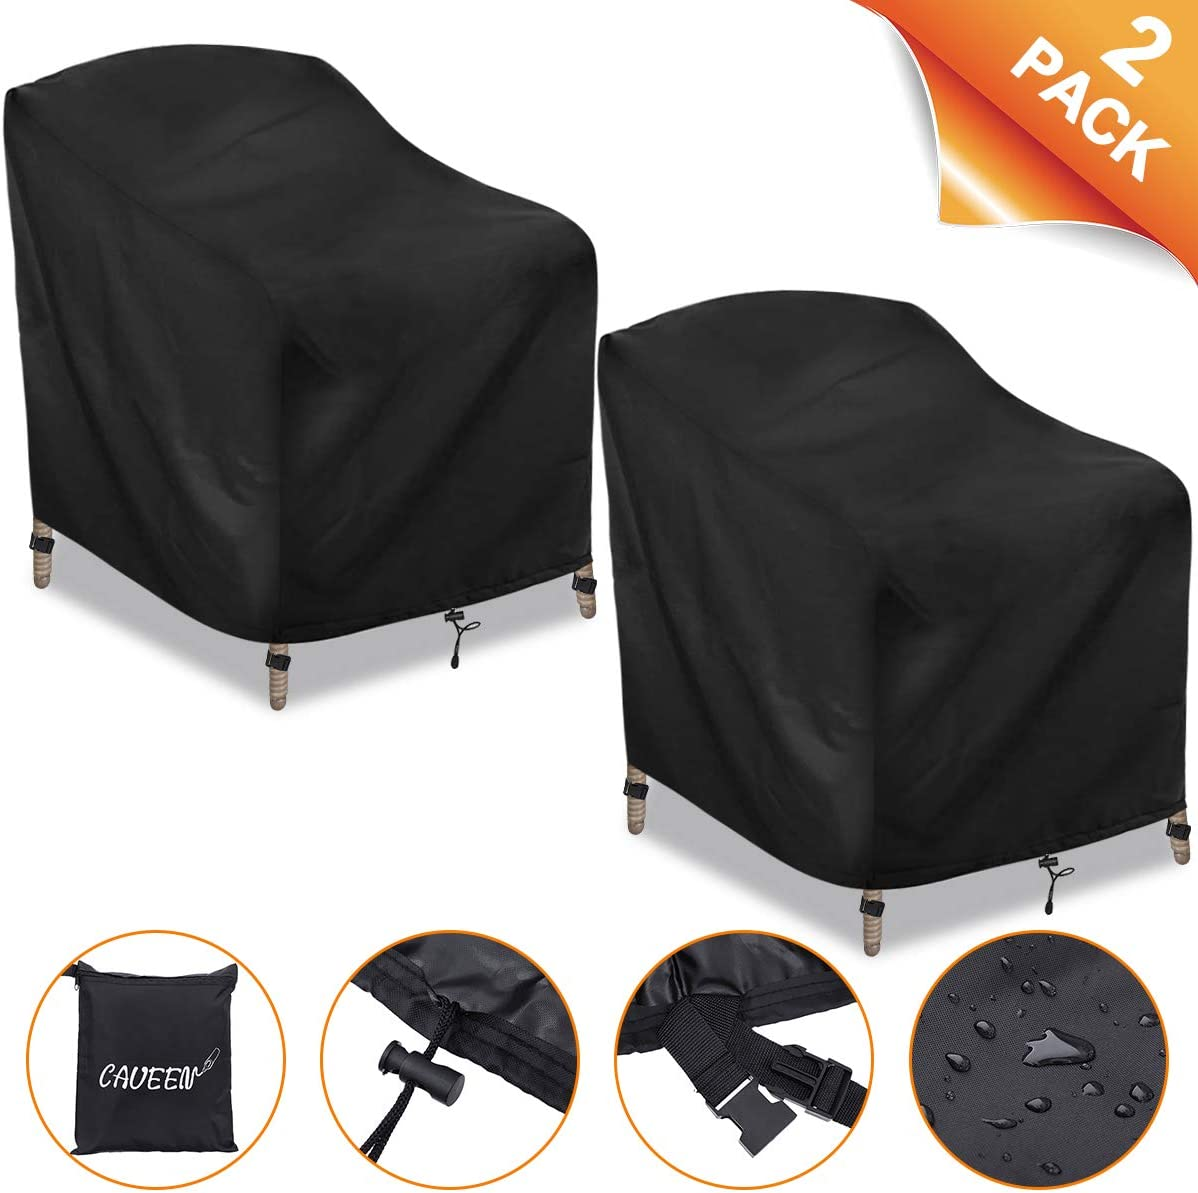 CAVEEN Patio Chair Covers, Outdoor Stackable-Chair Patio Furniture Cover, Waterproof Deep Seat Lounge Chair Cover, High Back 600D Oxford Patio Chair Cover Black Large 2 Pack